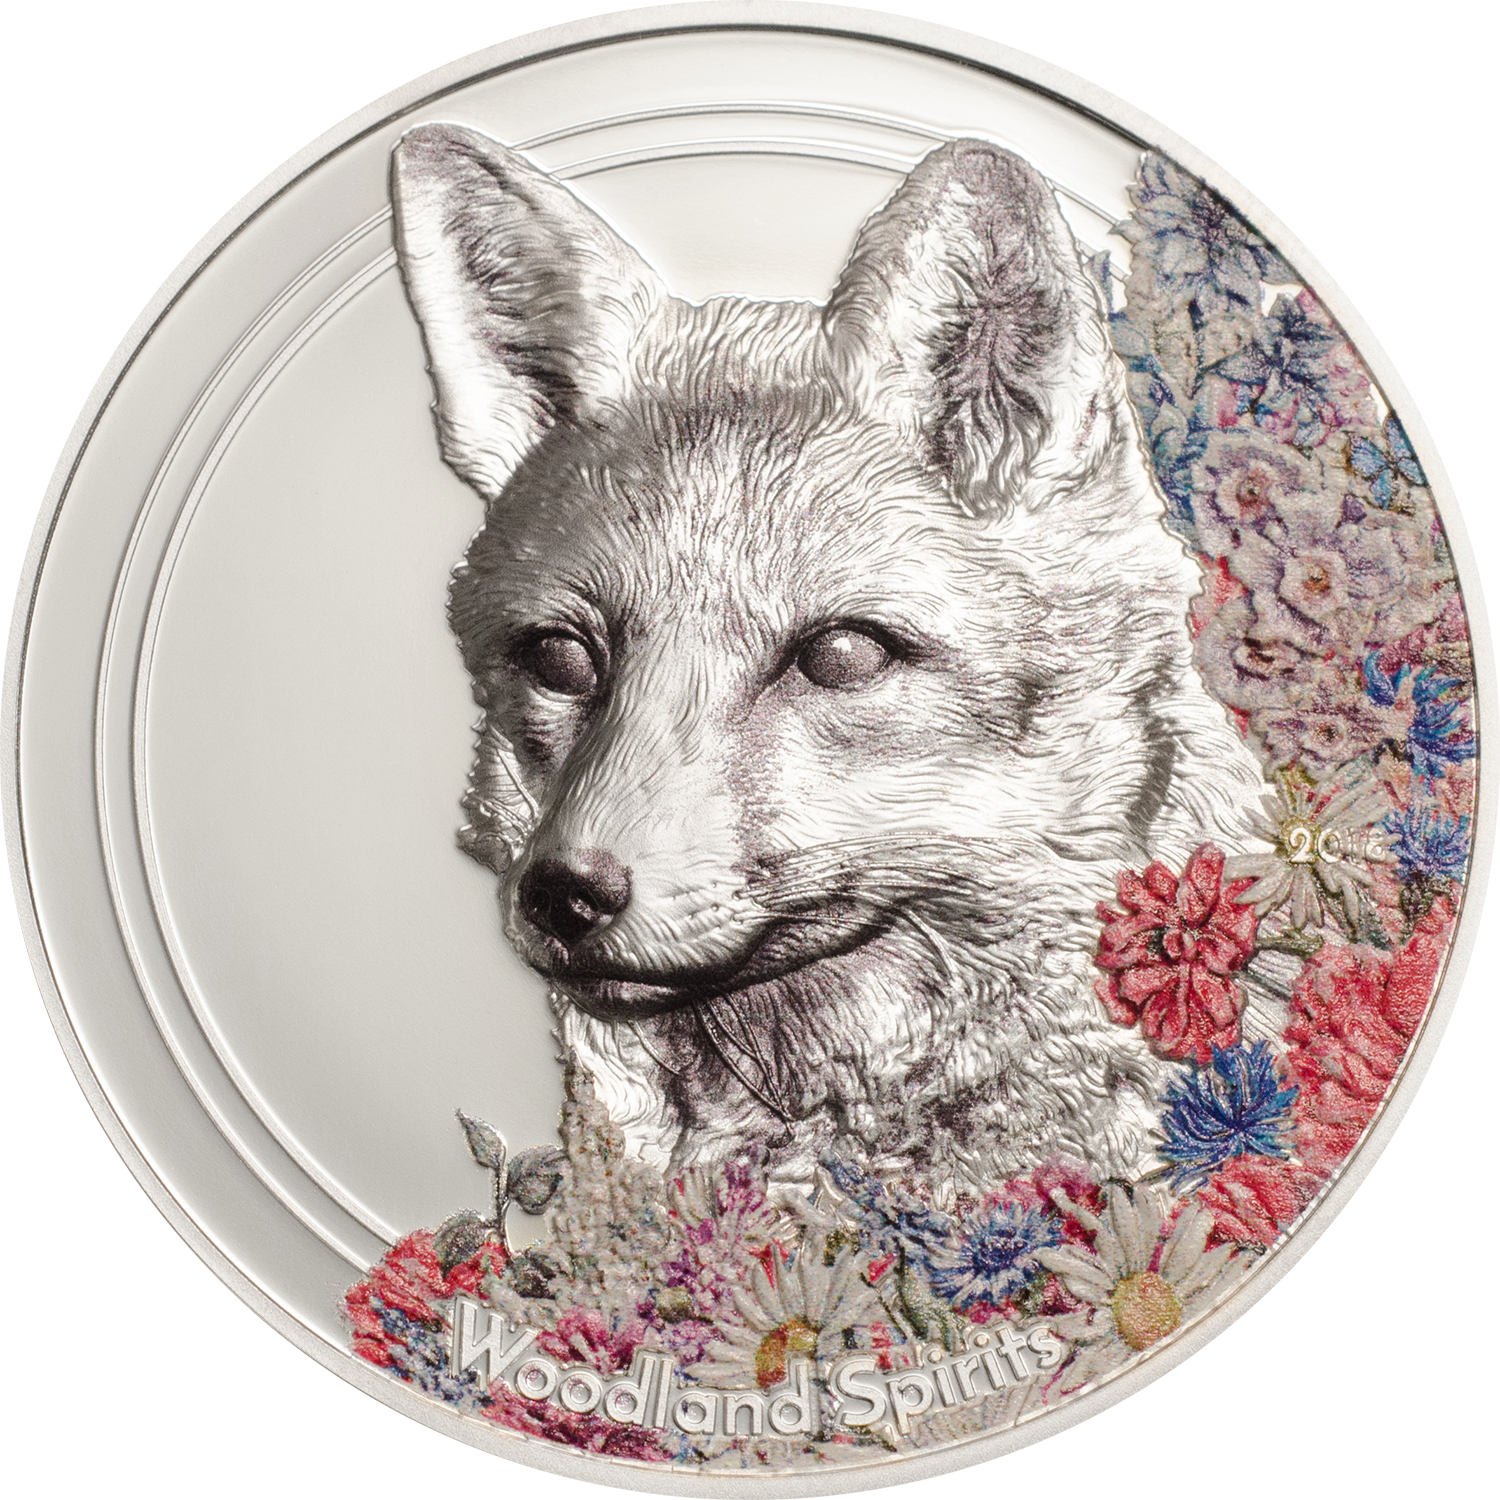 Woodland Spirits Fox new coin series by CIT Coin Invest AG with smartminting high relief and fine silver